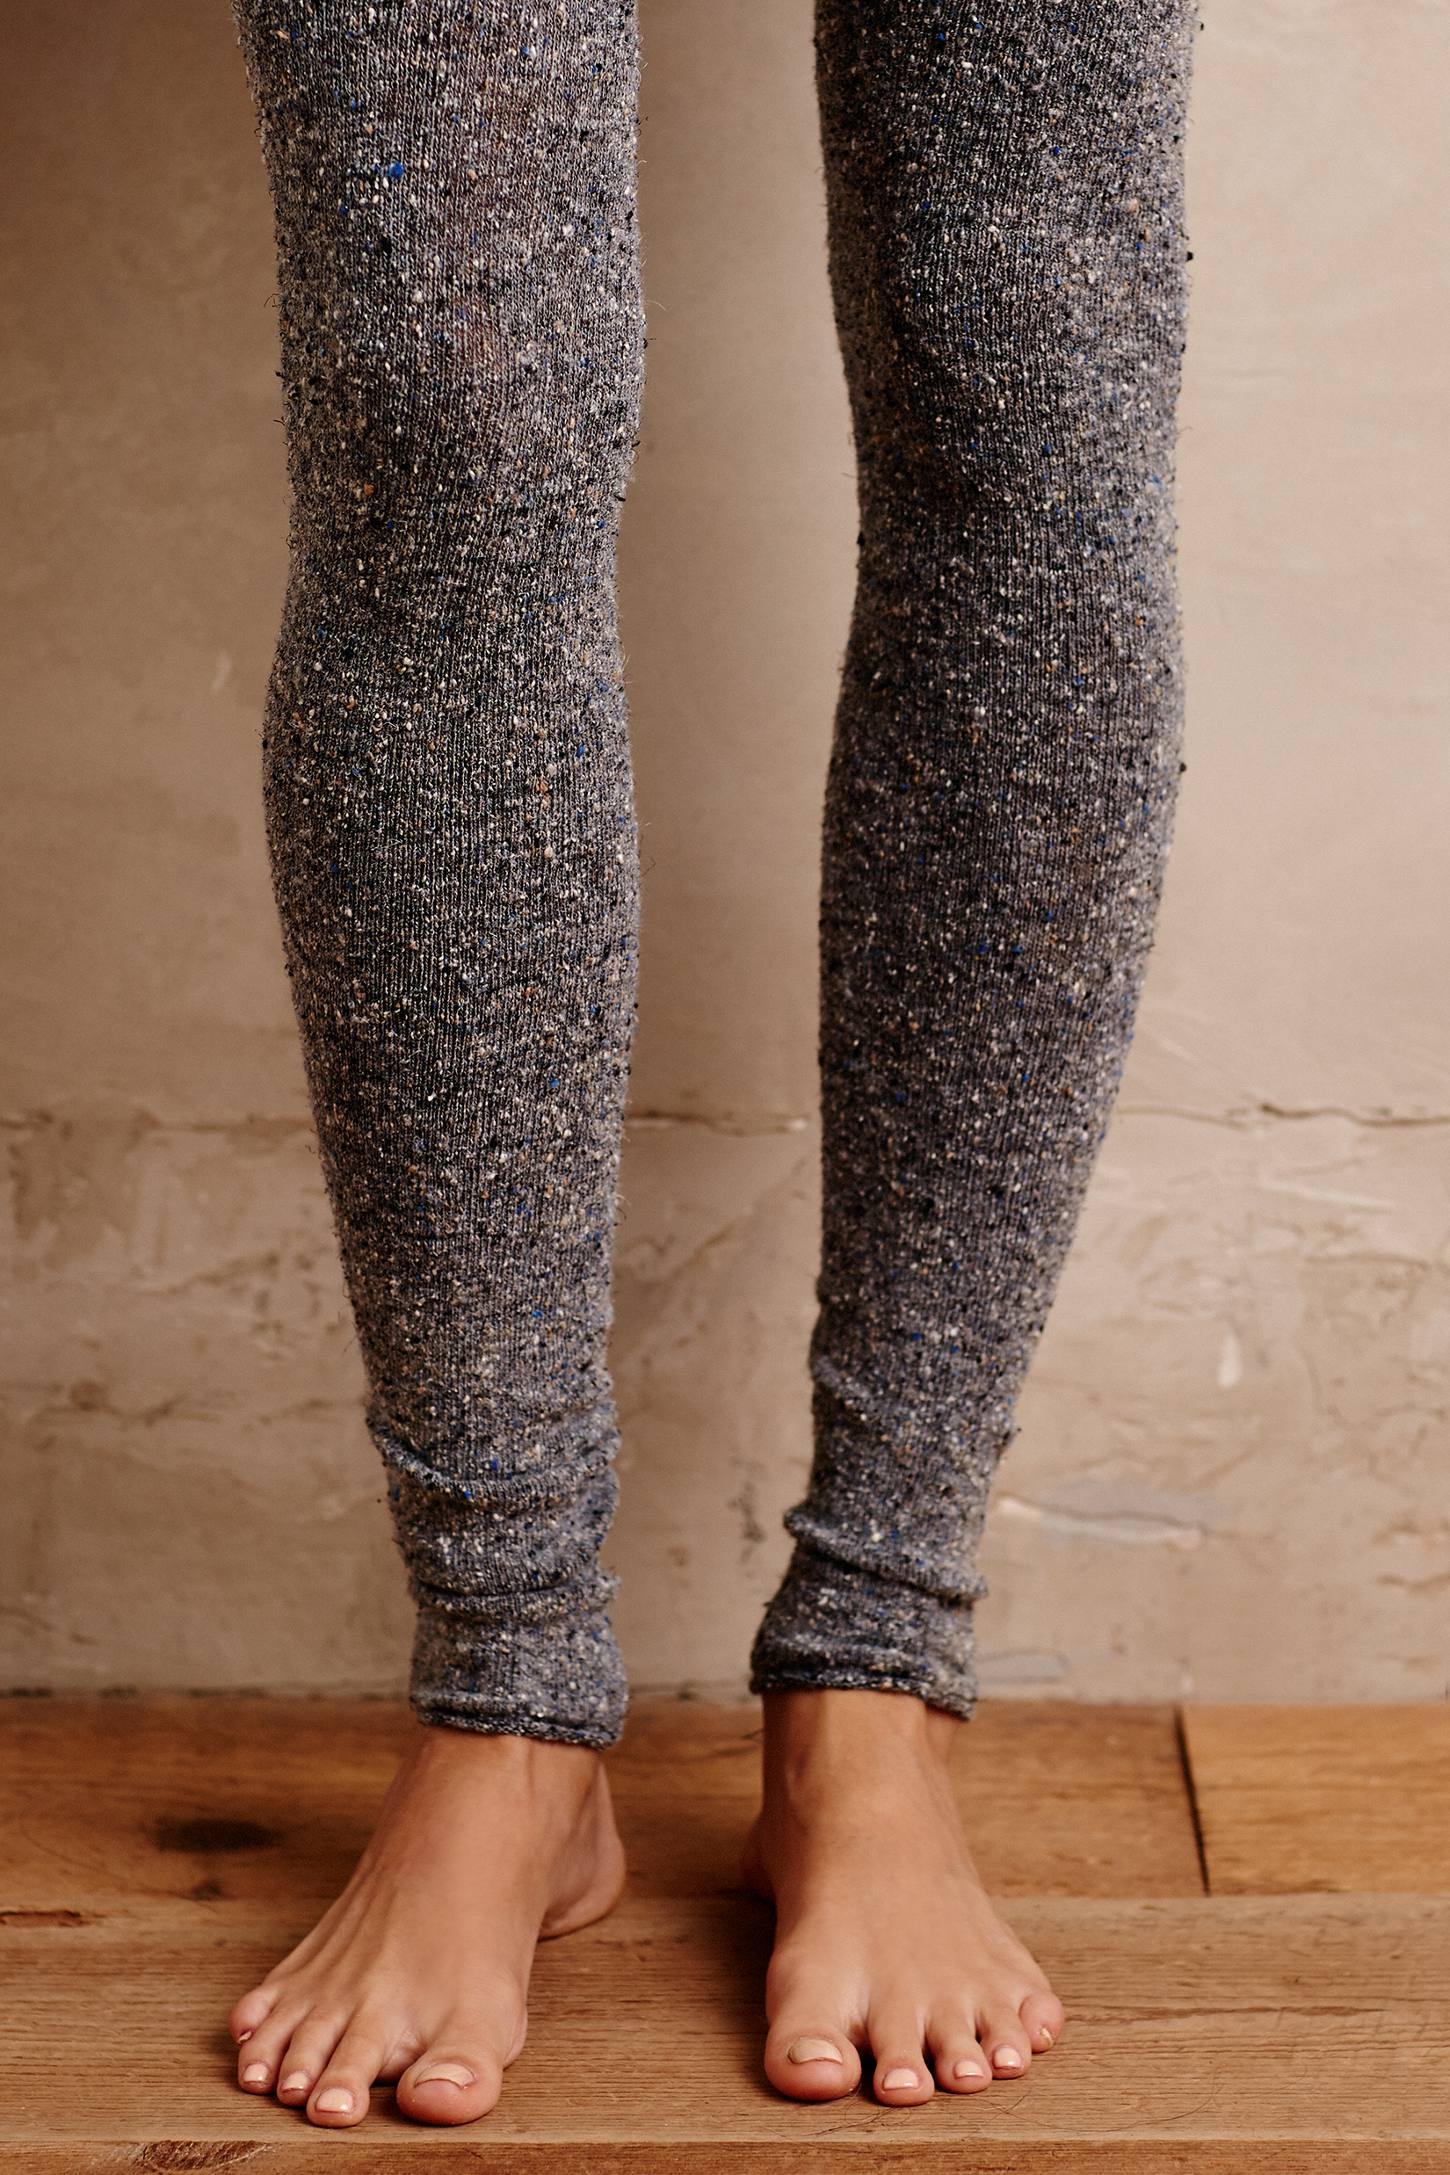 33 best Leg Warmers outfits images on Pinterest Leg warmers, Leg Fall fashion leg warmers